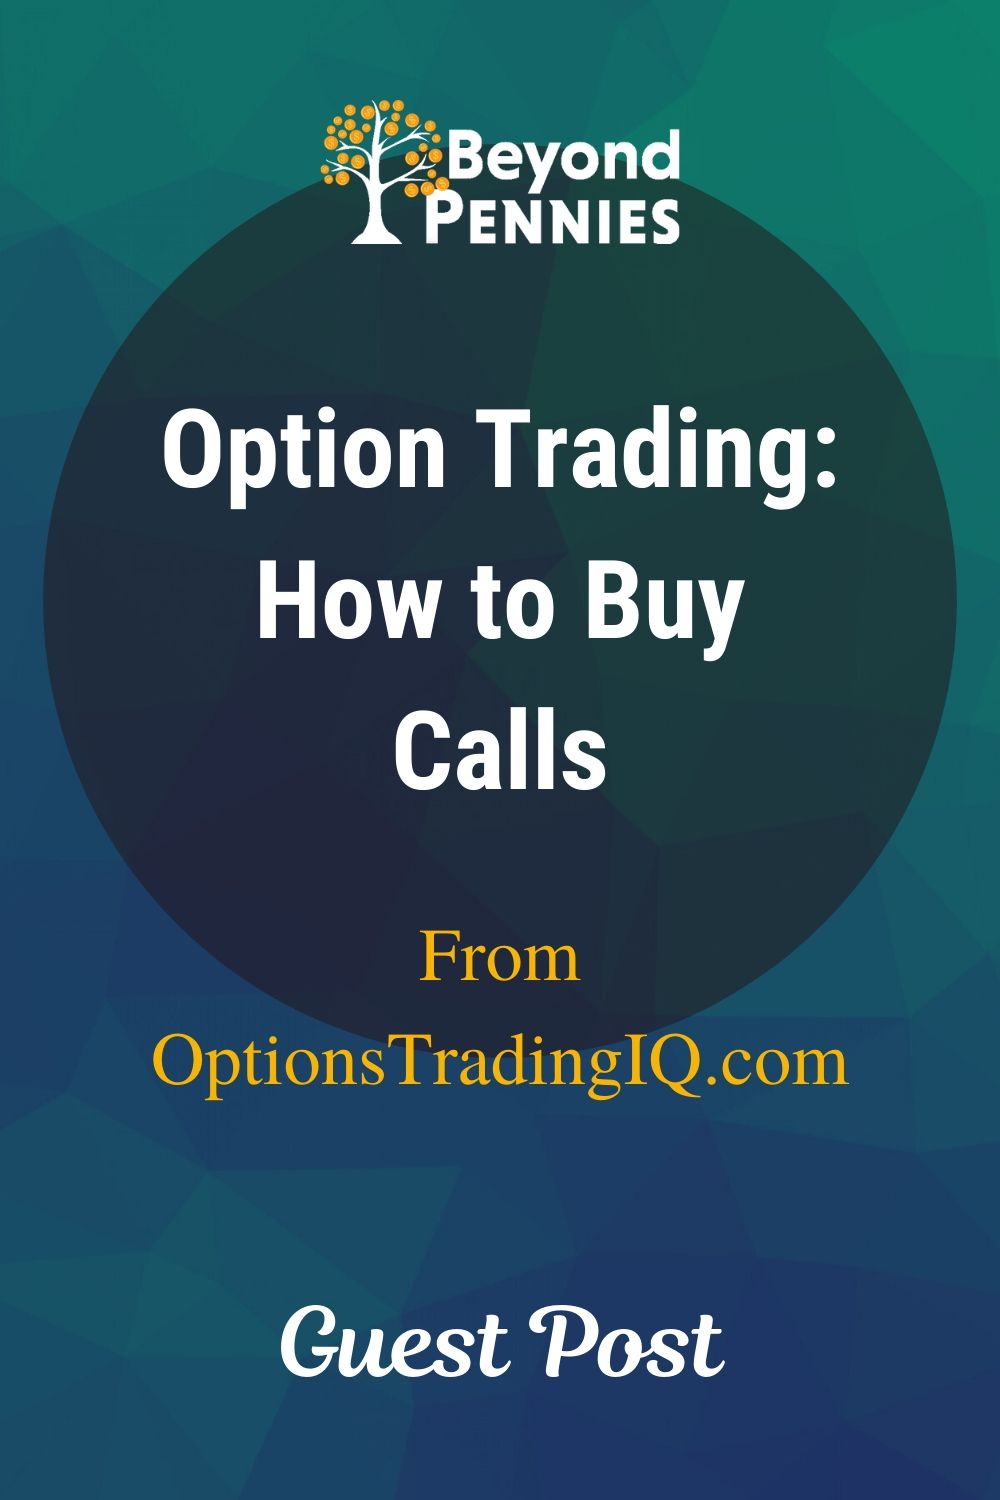 Option Trading: How to Buy Calls